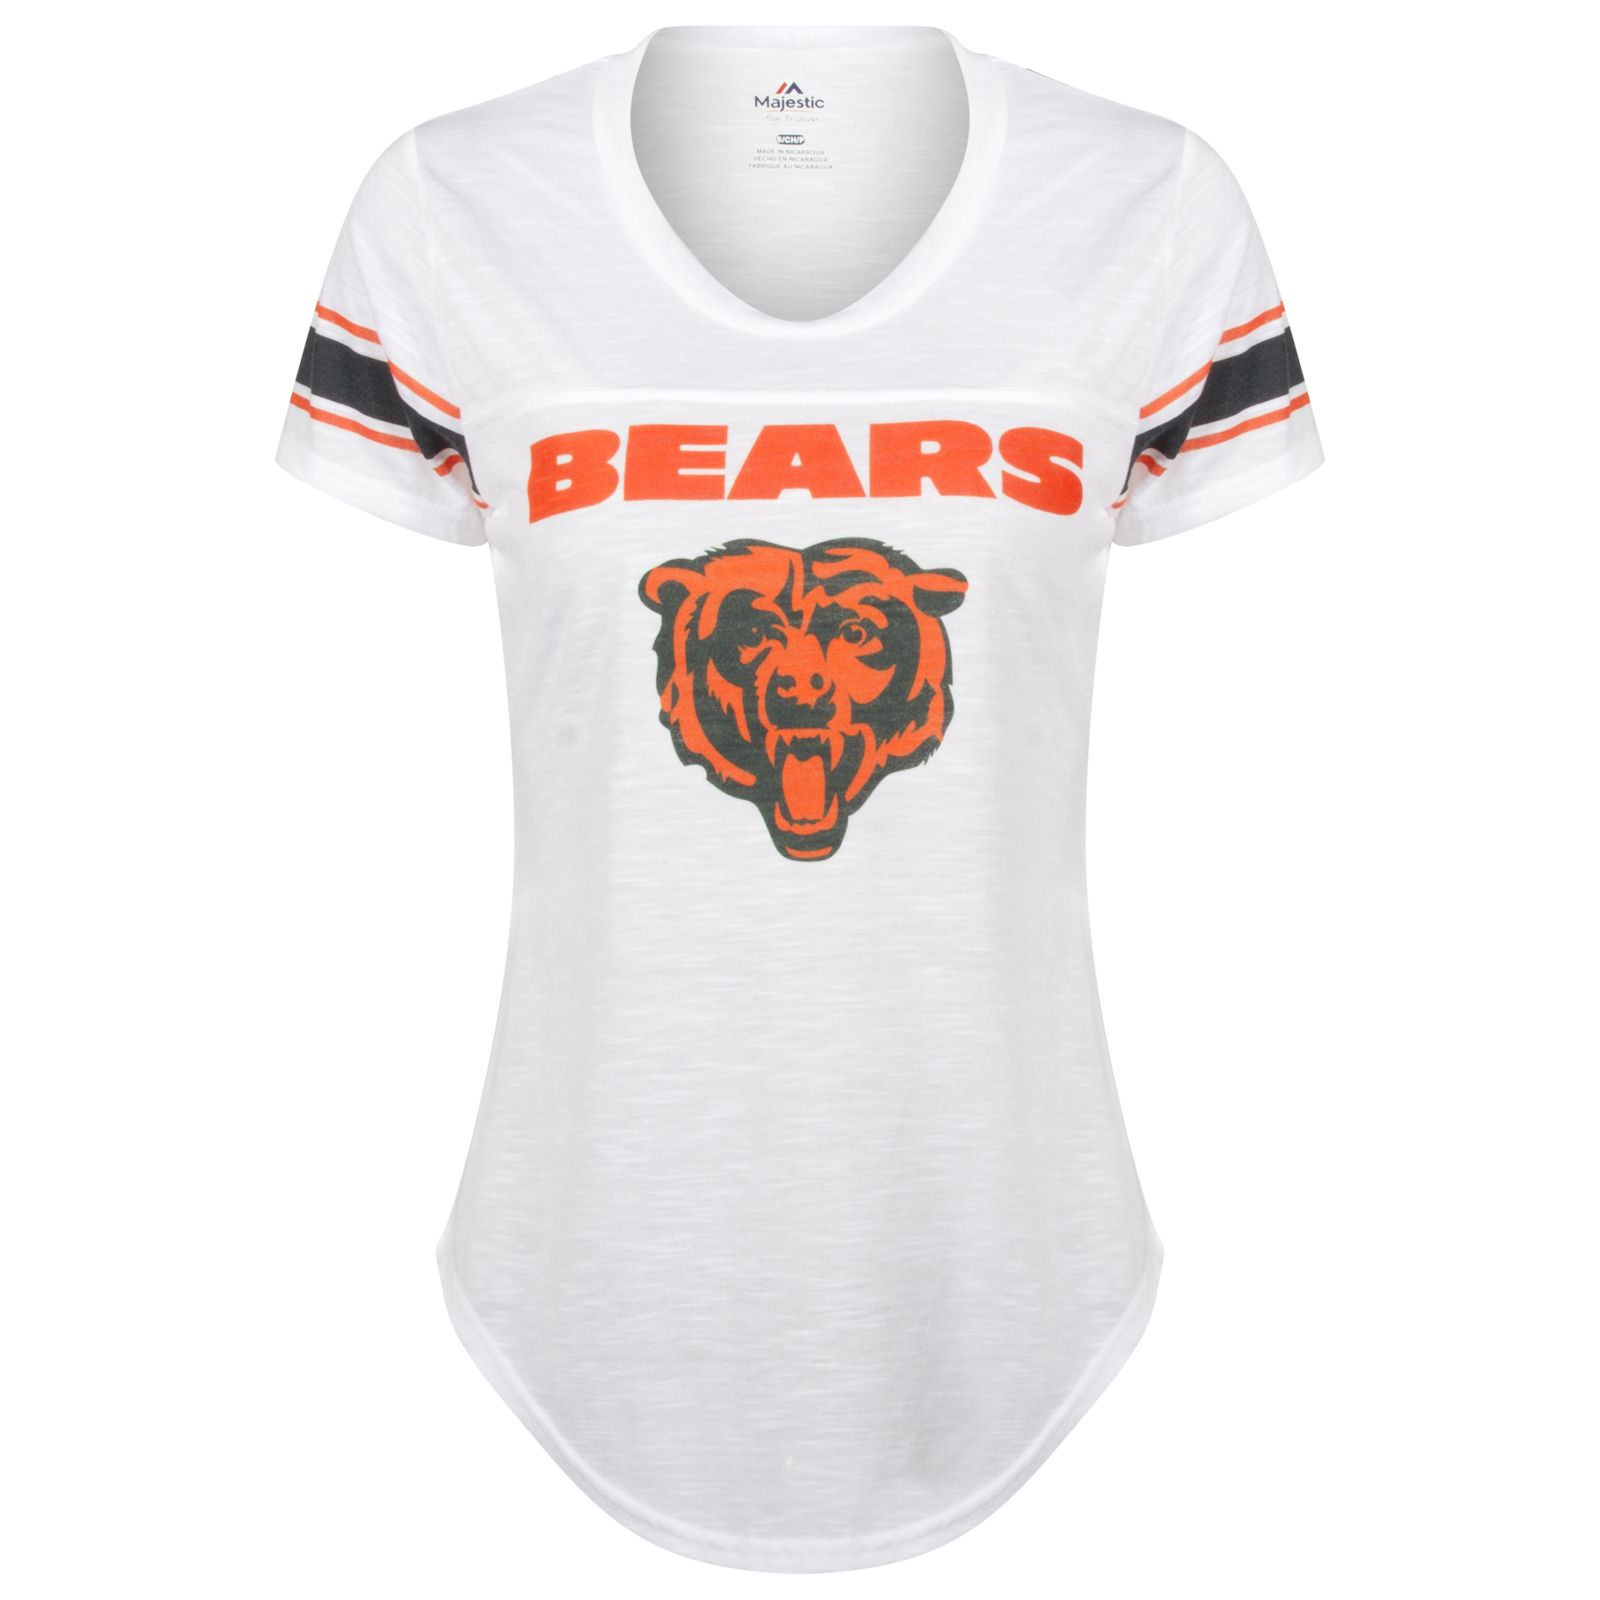 99f69c6a2 Chicago Bears Women's White Striped Sleeve Primary Logos Burnout Scoop Neck  Tee by Majestic #Chicago #Bears #ChicagoBears